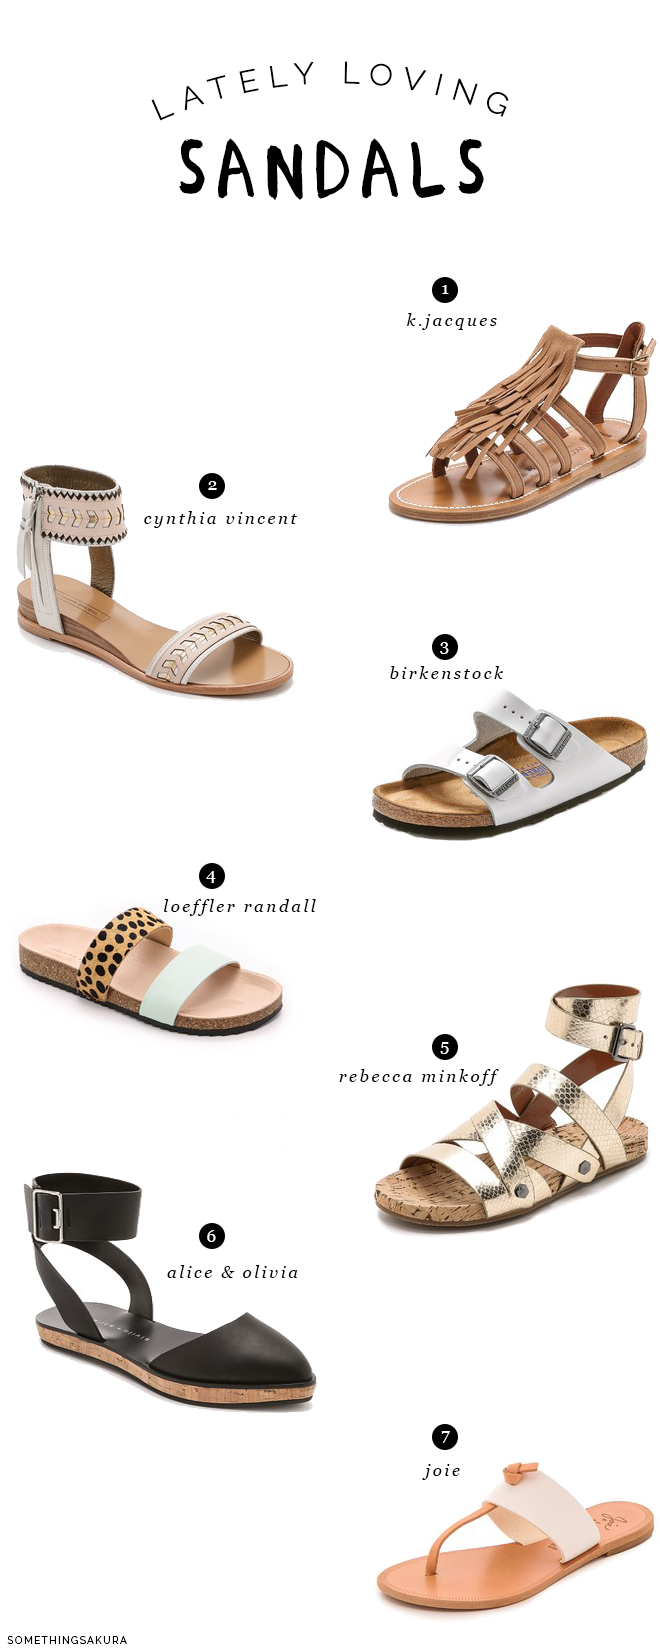 Something Sakura: Lately Loving Sandals